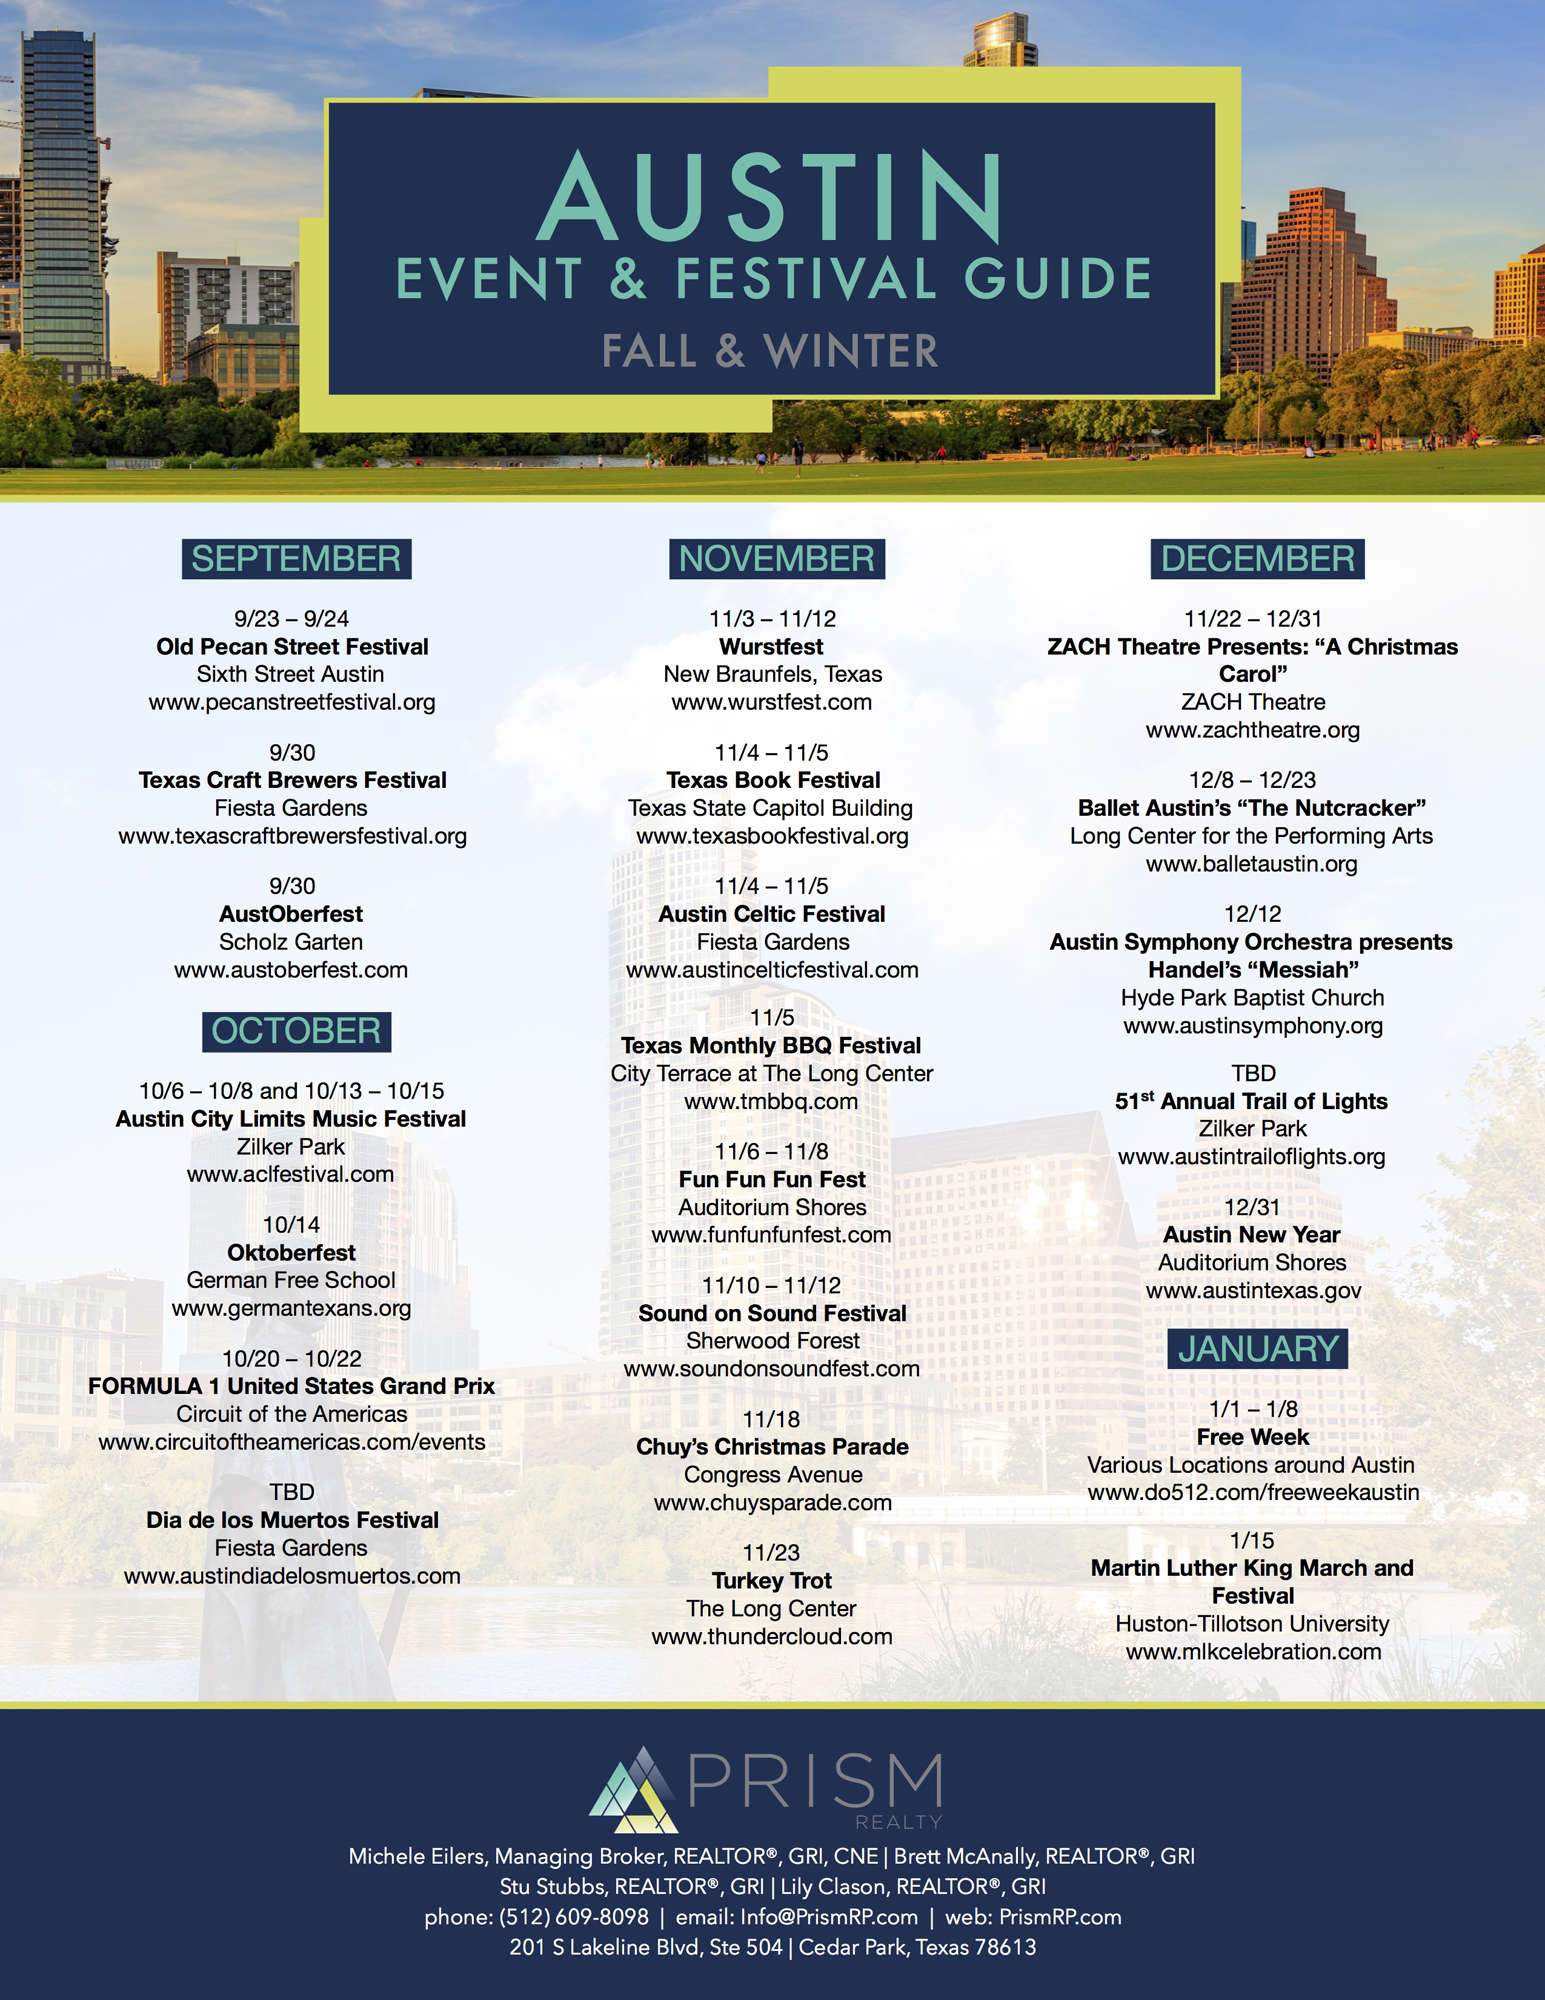 Austin-Event-Festival-Guide-Fall-Winter-Prism-Realty